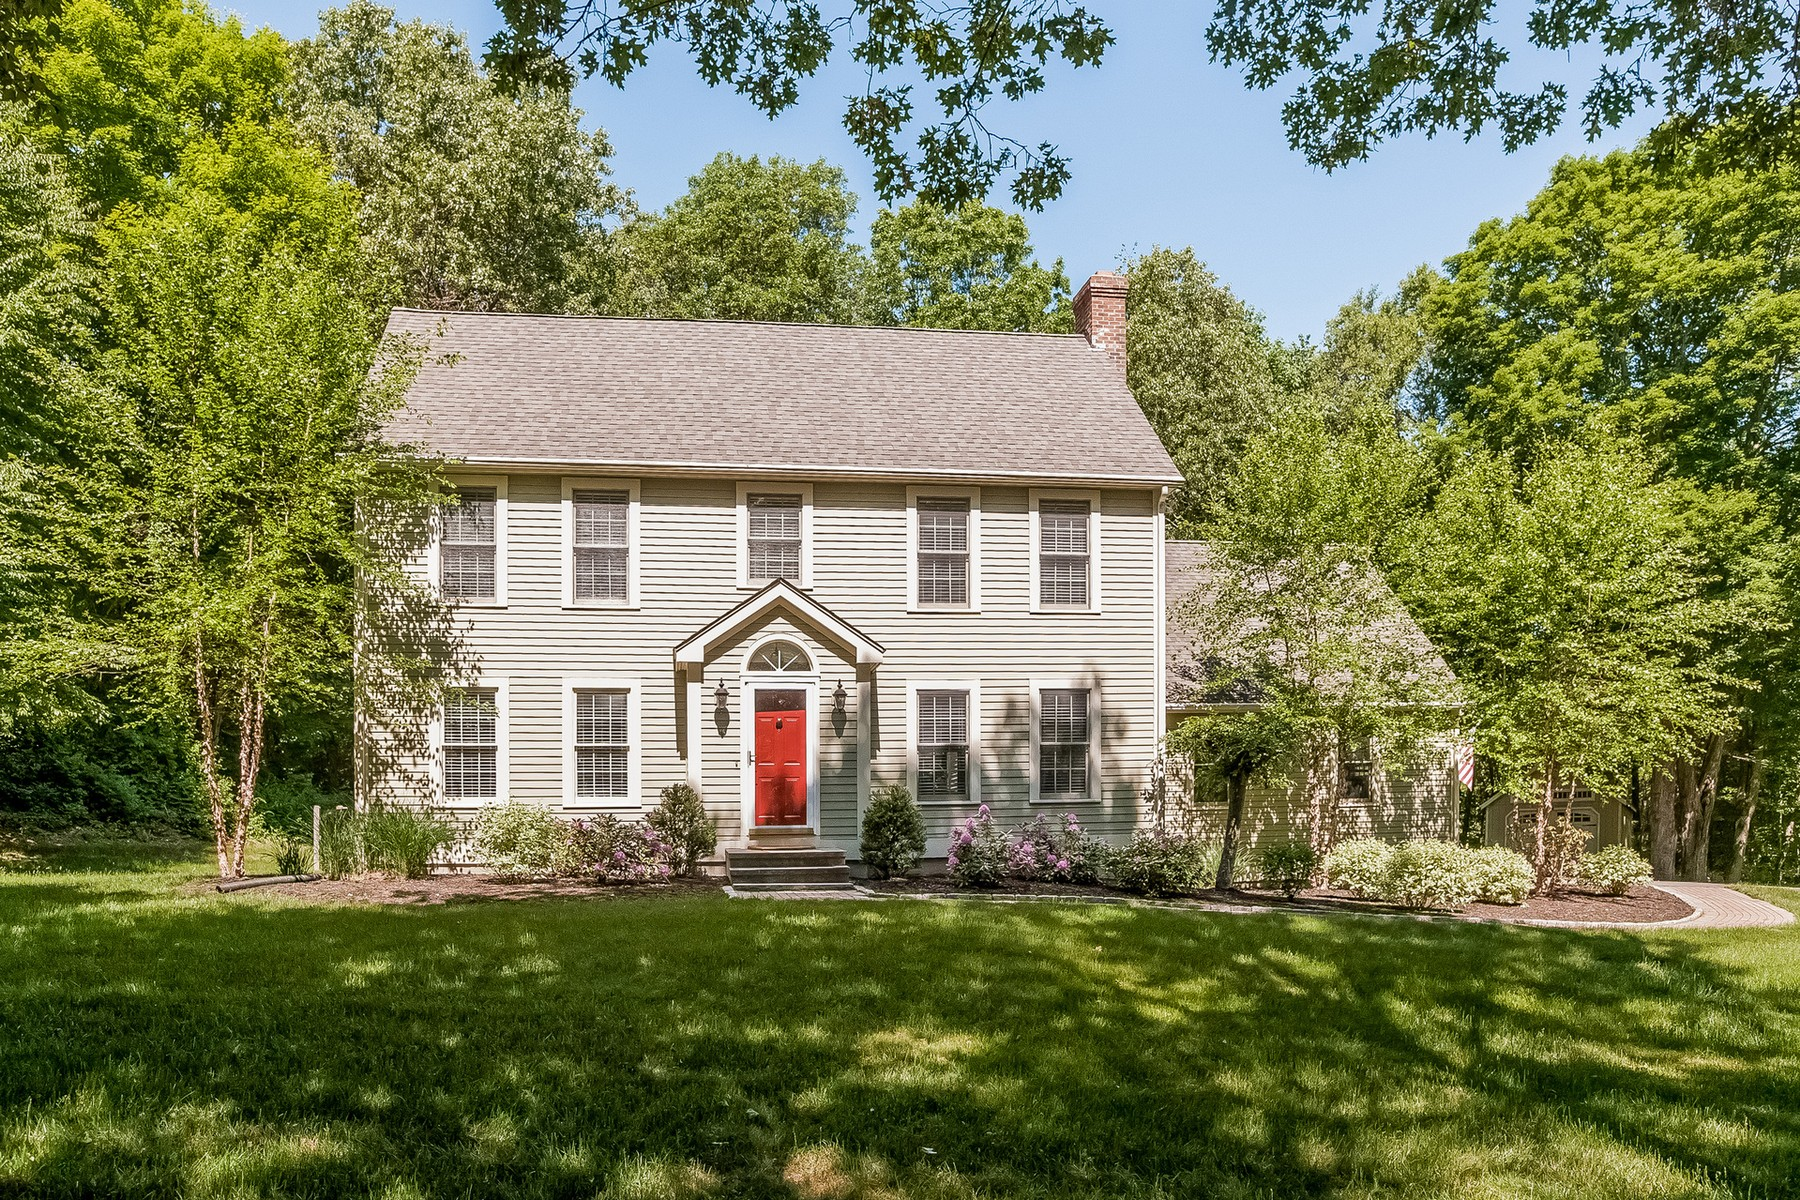 Single Family Home for Sale at Beautifully Maintained Colonial 7 Lords Meadow Ln Old Lyme, Connecticut 06371 United States